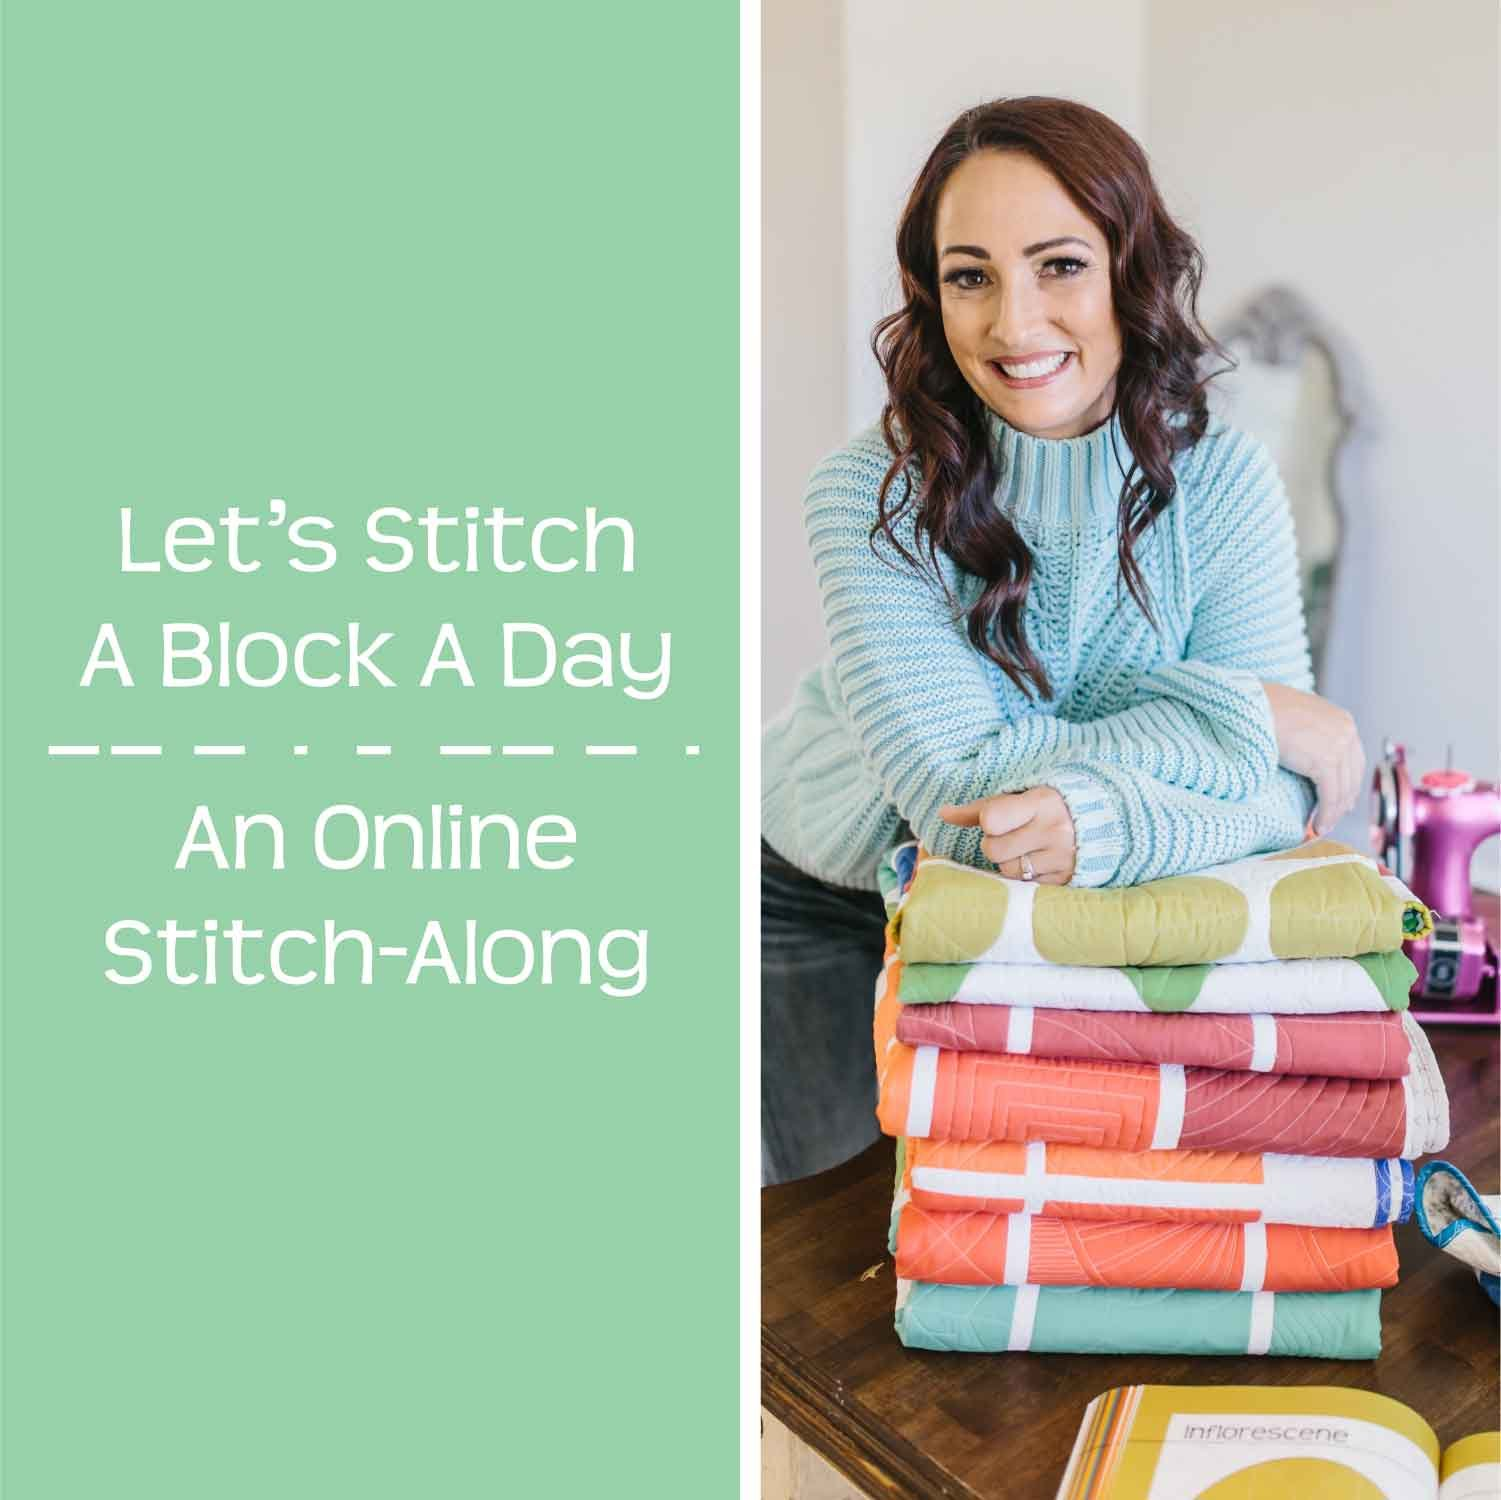 Let's Stitch - A Block A Day